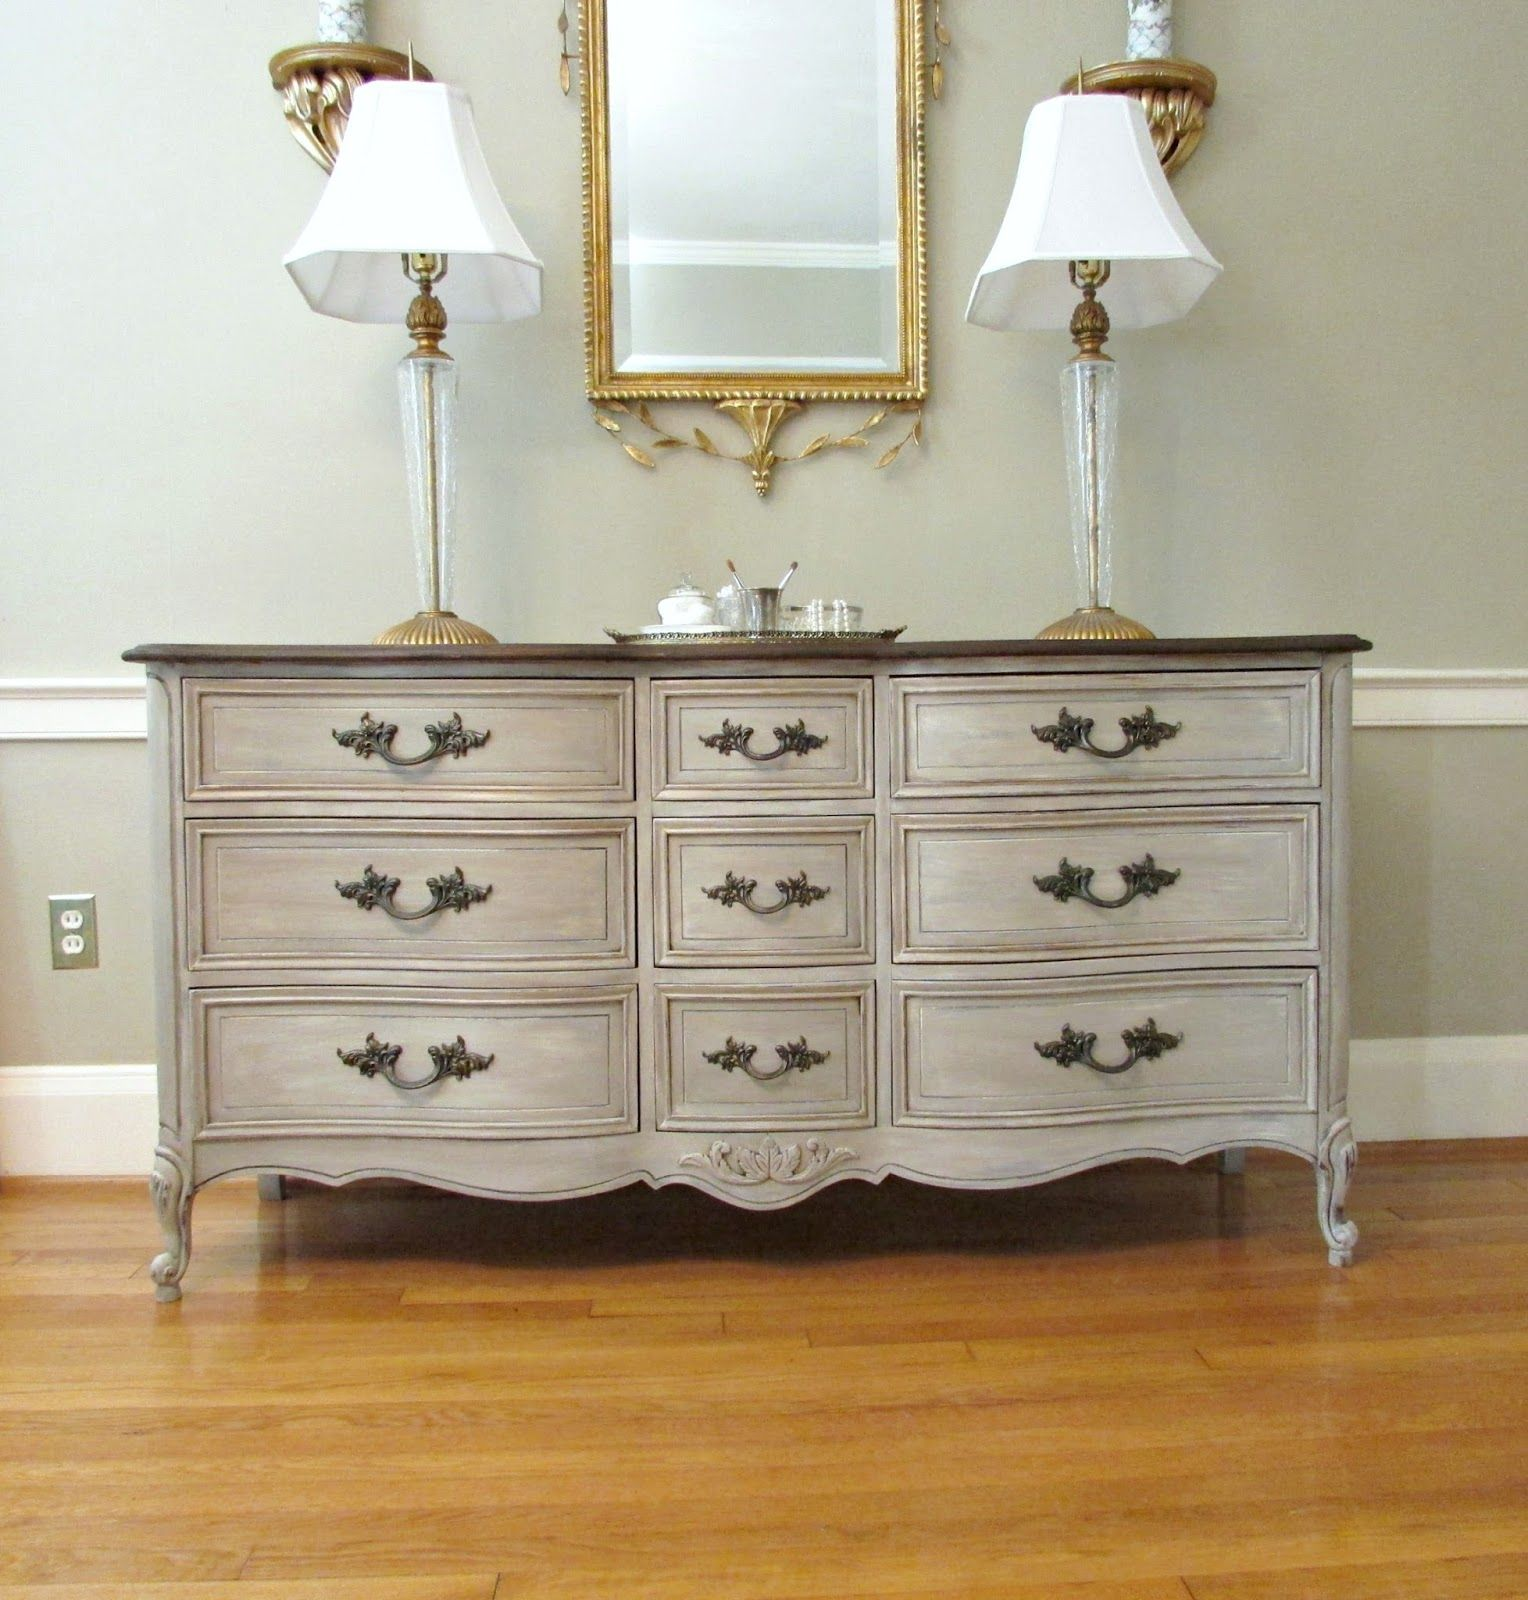 French Linen for a French Dresser Painted bedroom